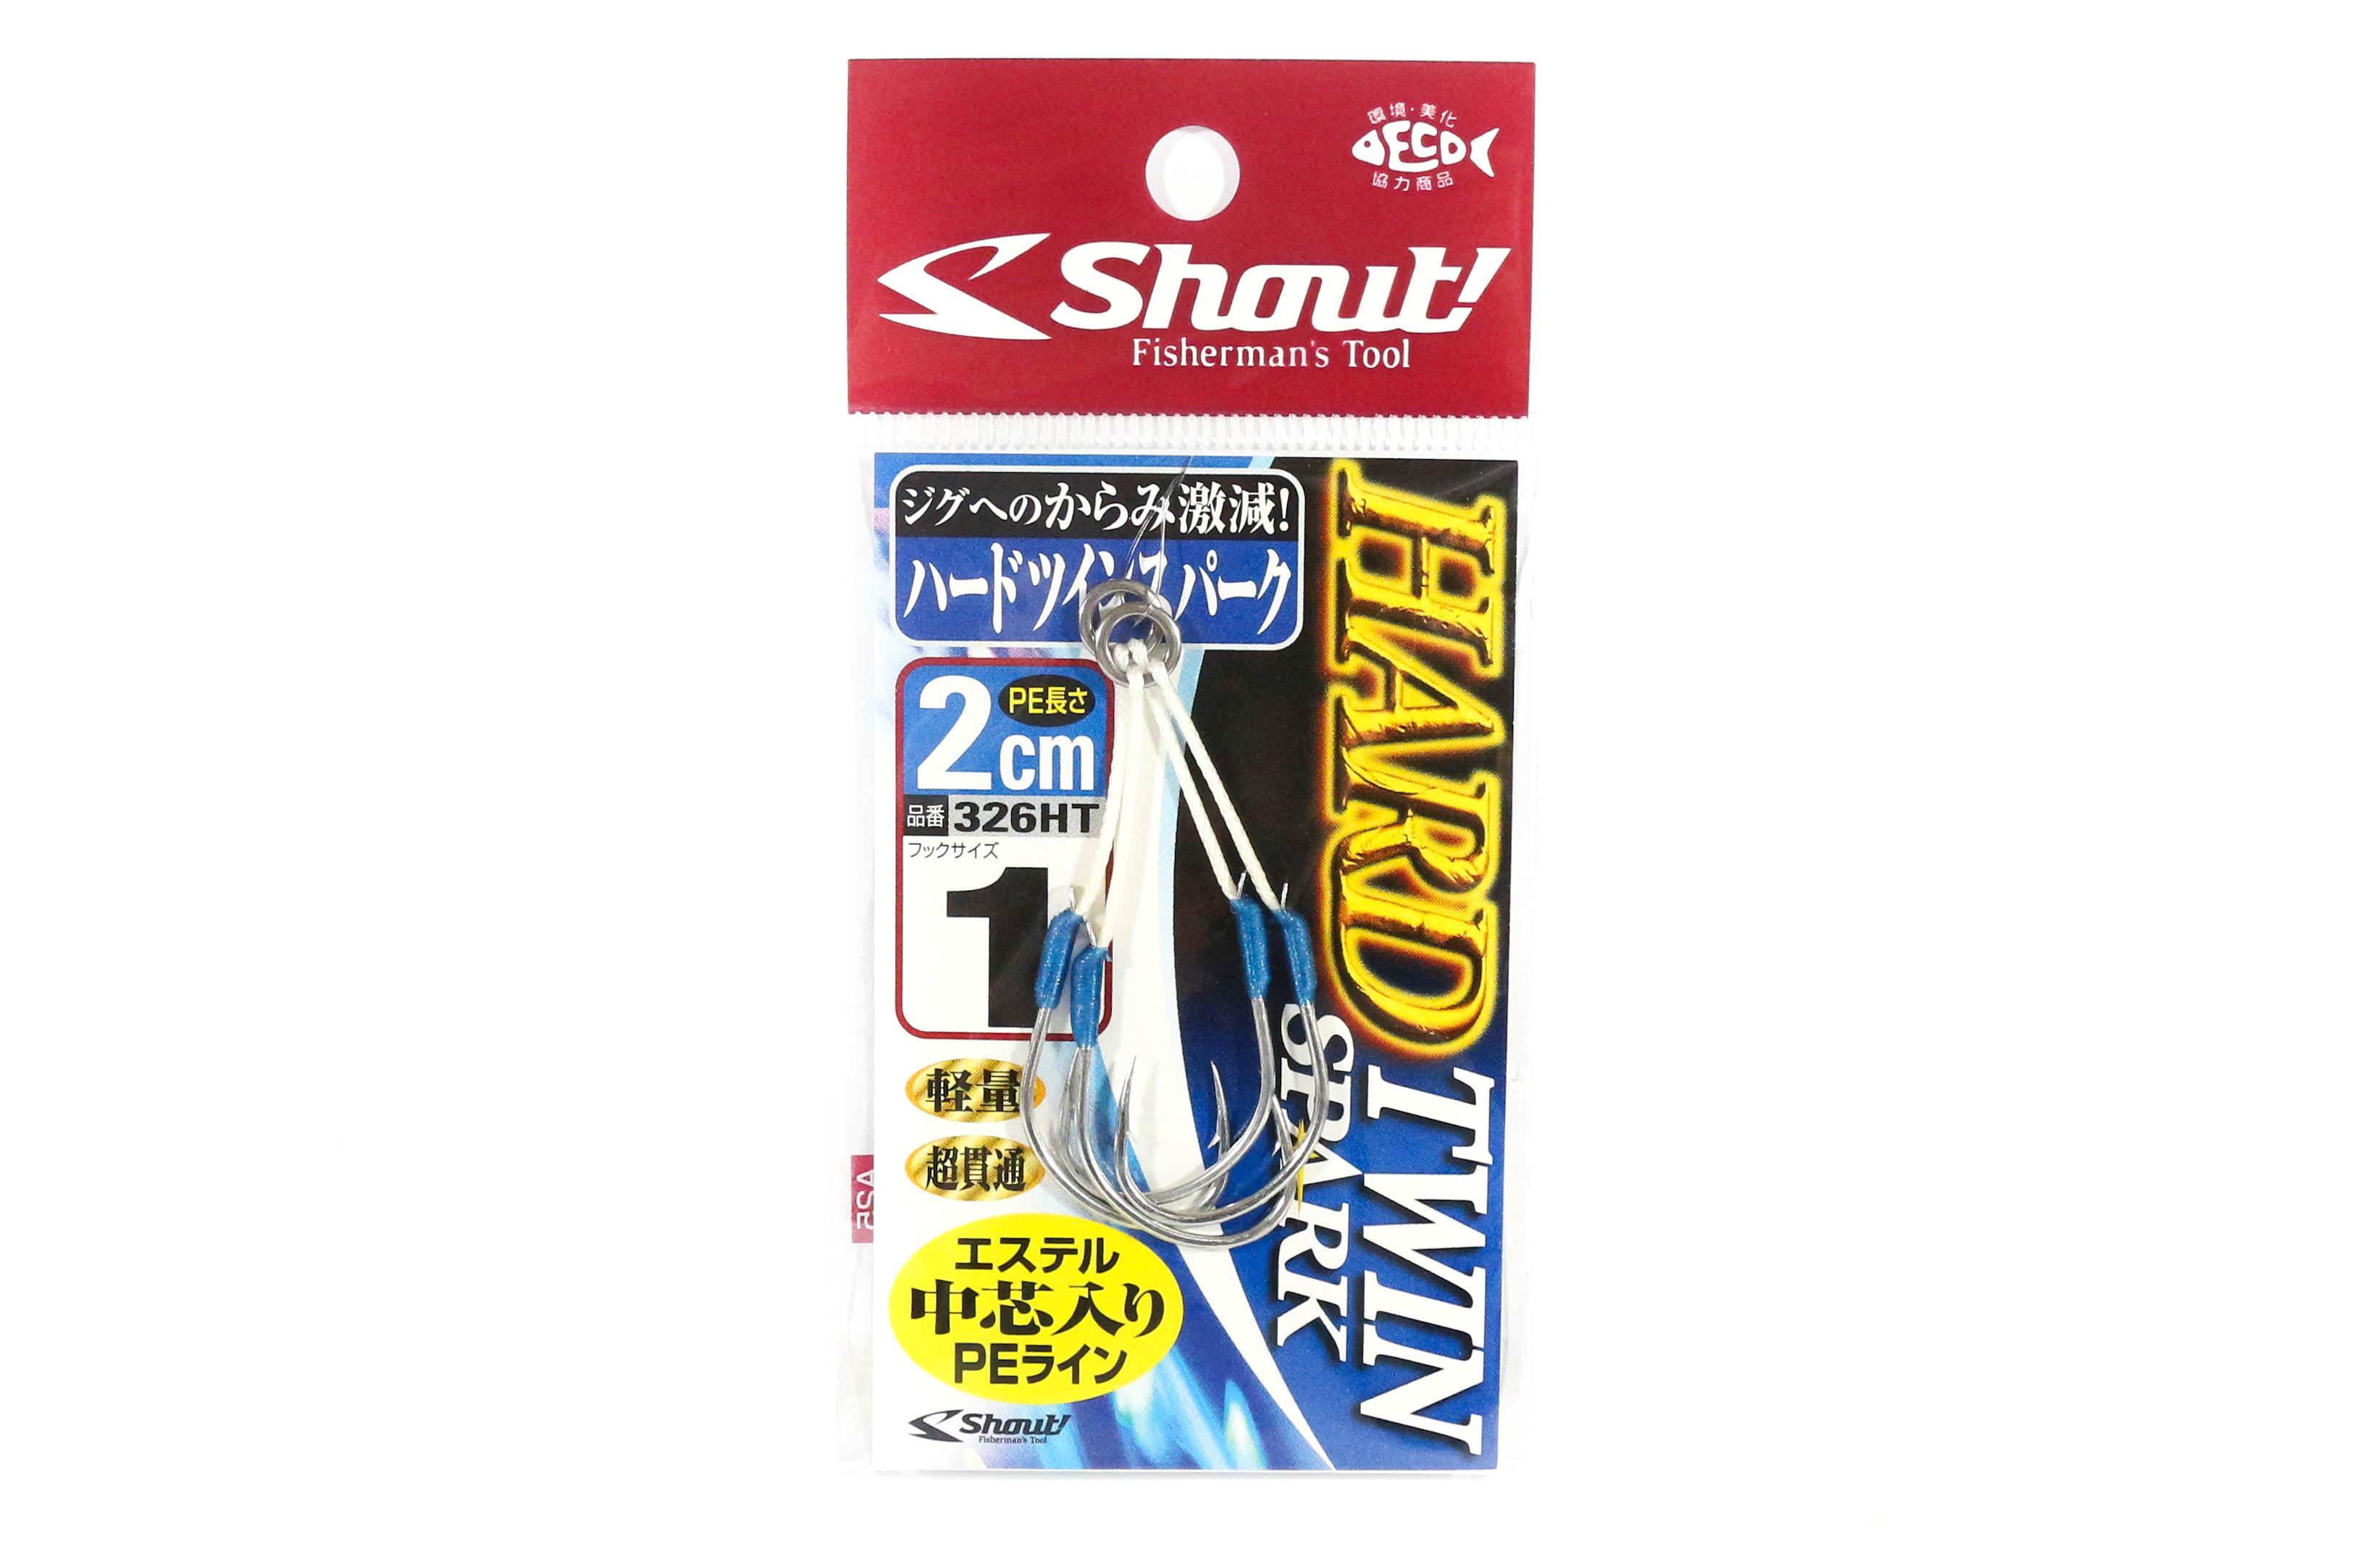 1//0 Shout 83-SH Spare Hook for Madai Rubber Jig Iseama Hook Size LL 6887